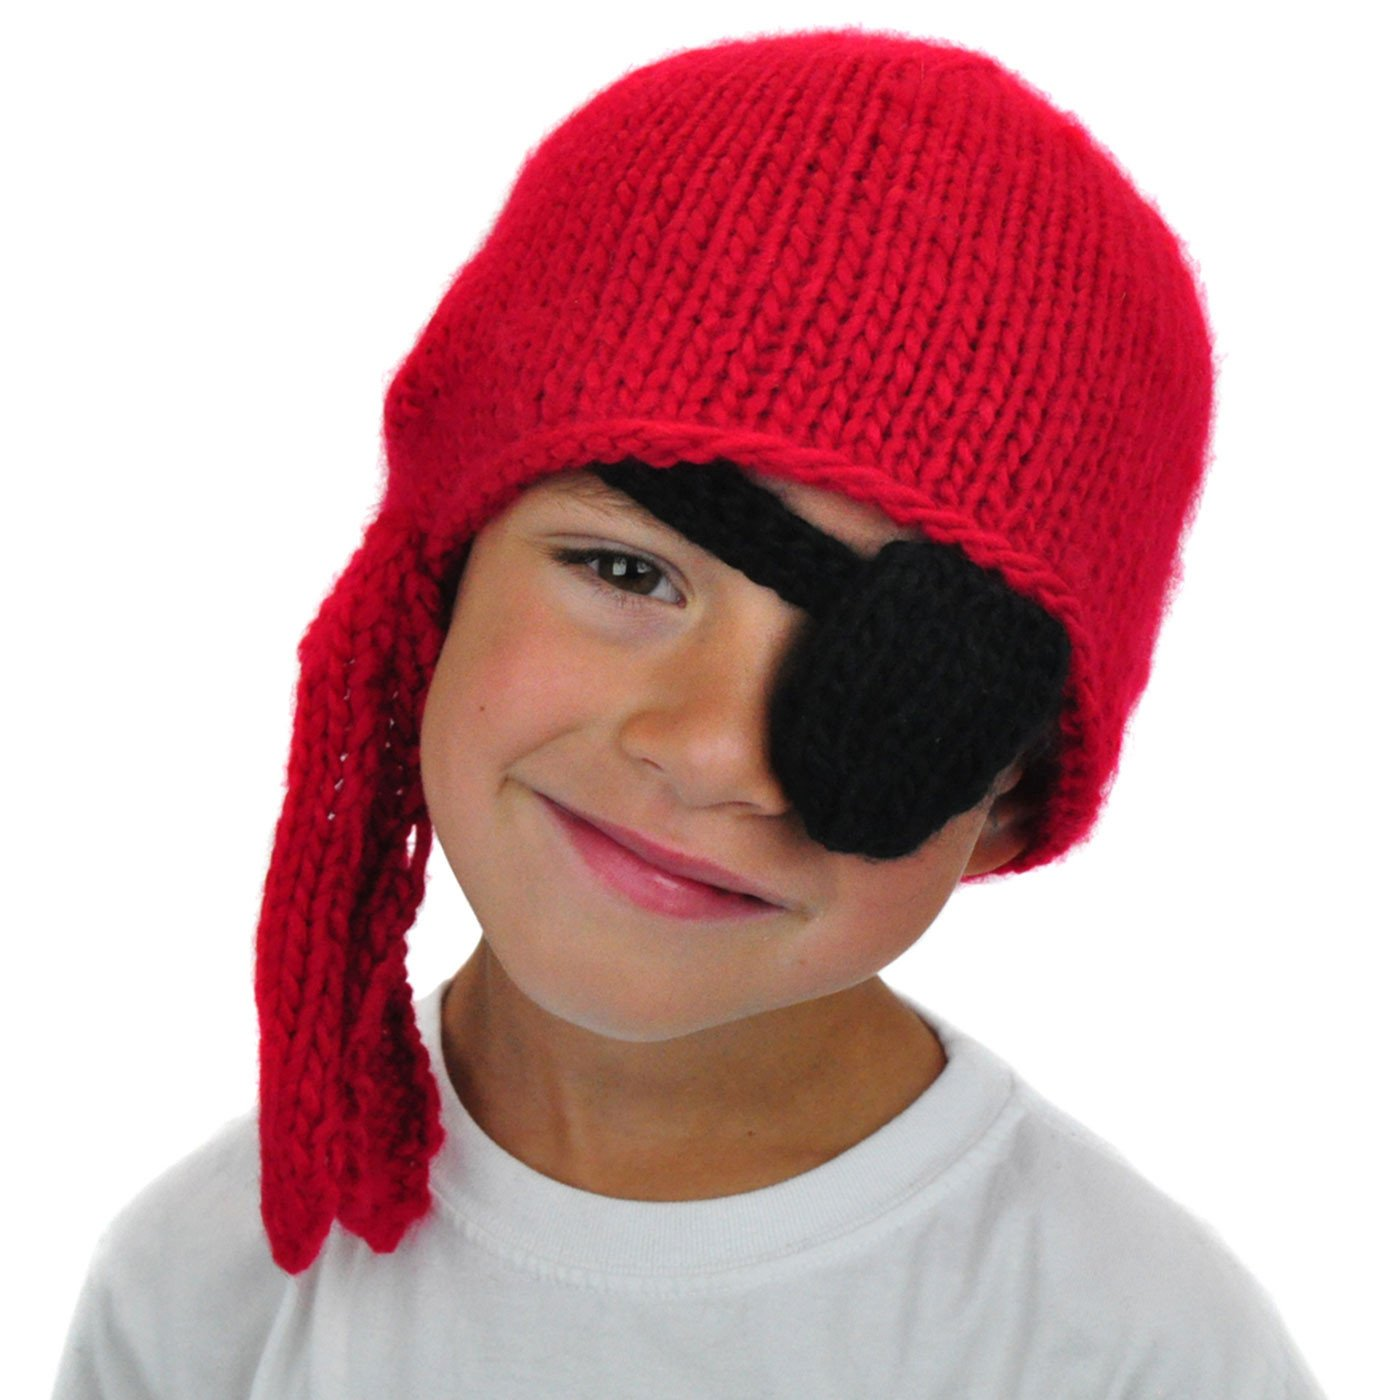 Cute Fun Boys Winter Ski Snowboard Hat Christmas Neon Eaters Kids Pirate Beanie Patch